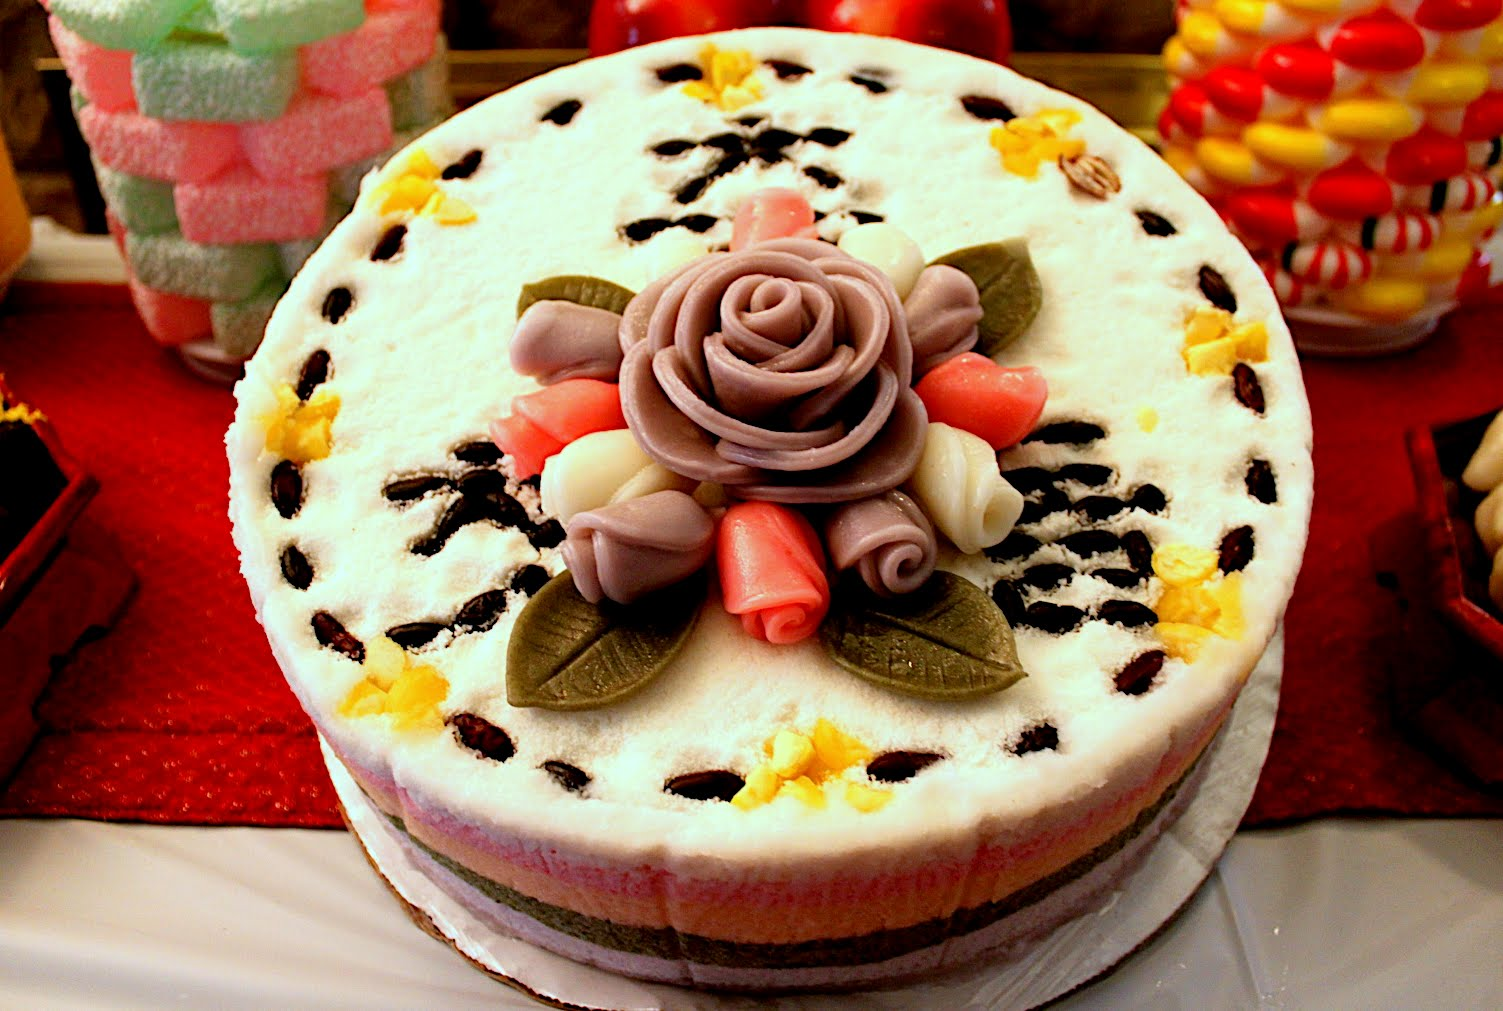 Korean Birthday Cake Images : Dohl Celebration! Mother s Mementos